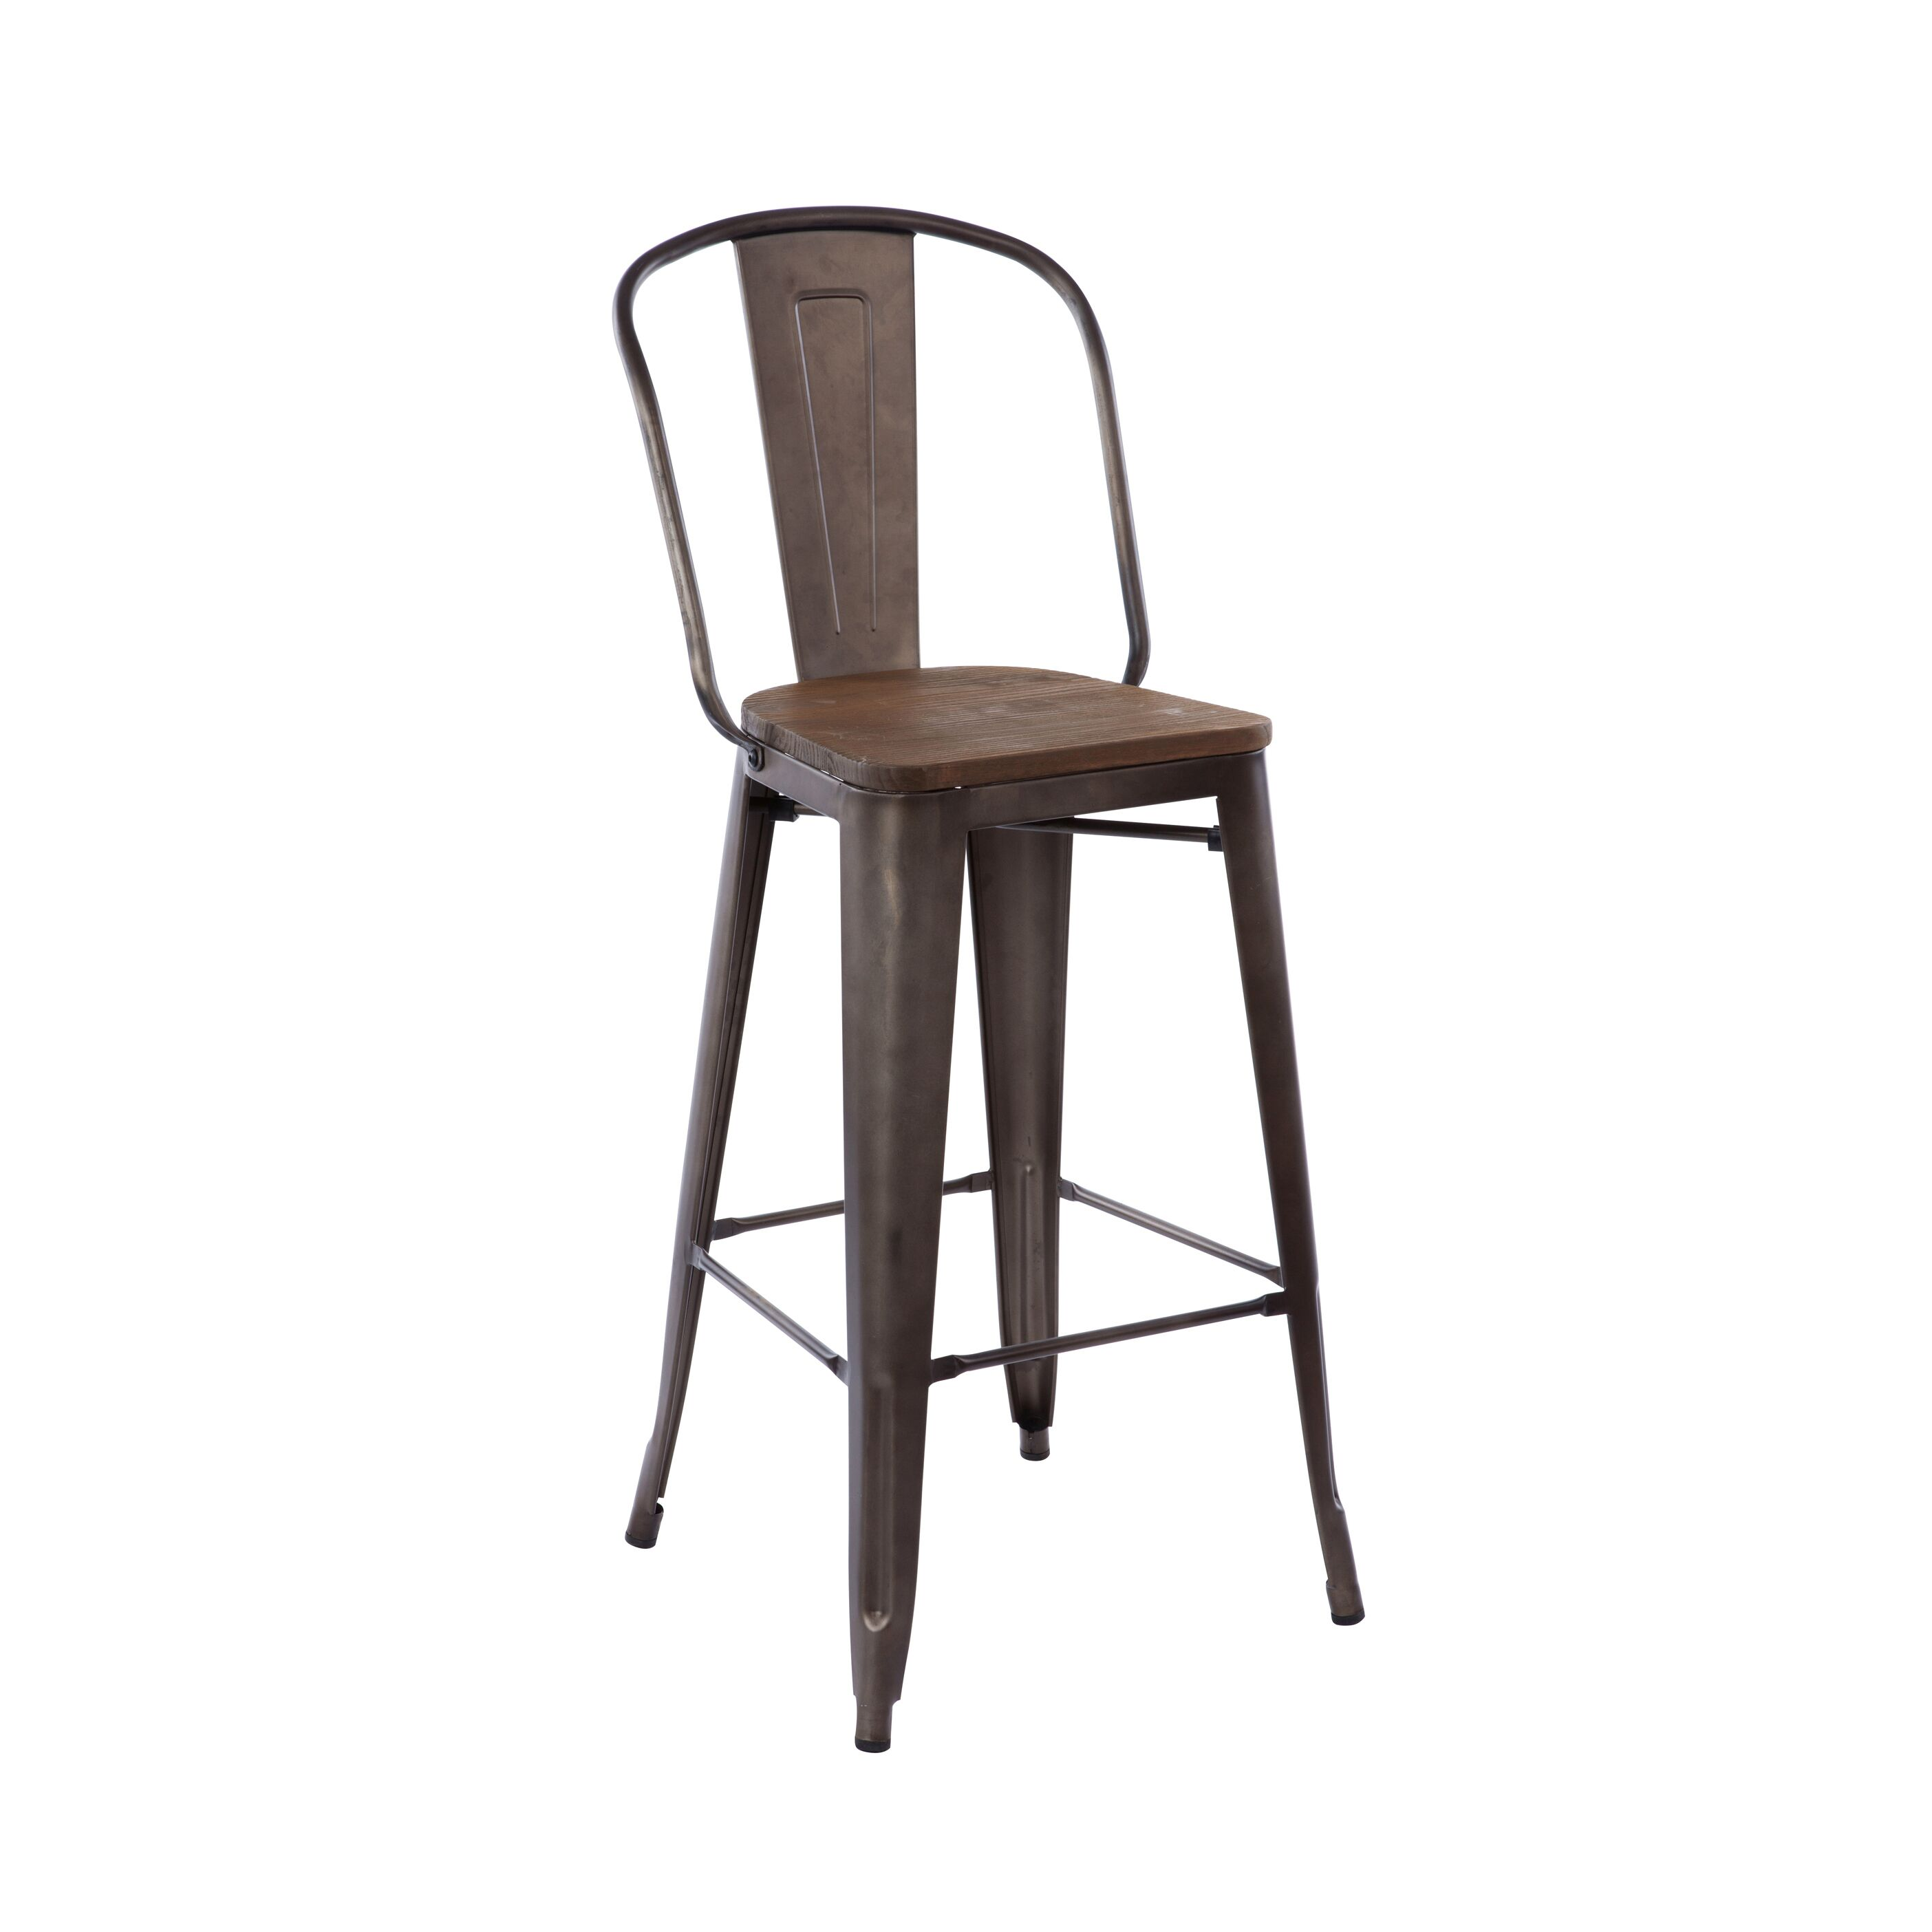 Industrial Chairs Tolix – TableBaseDepot